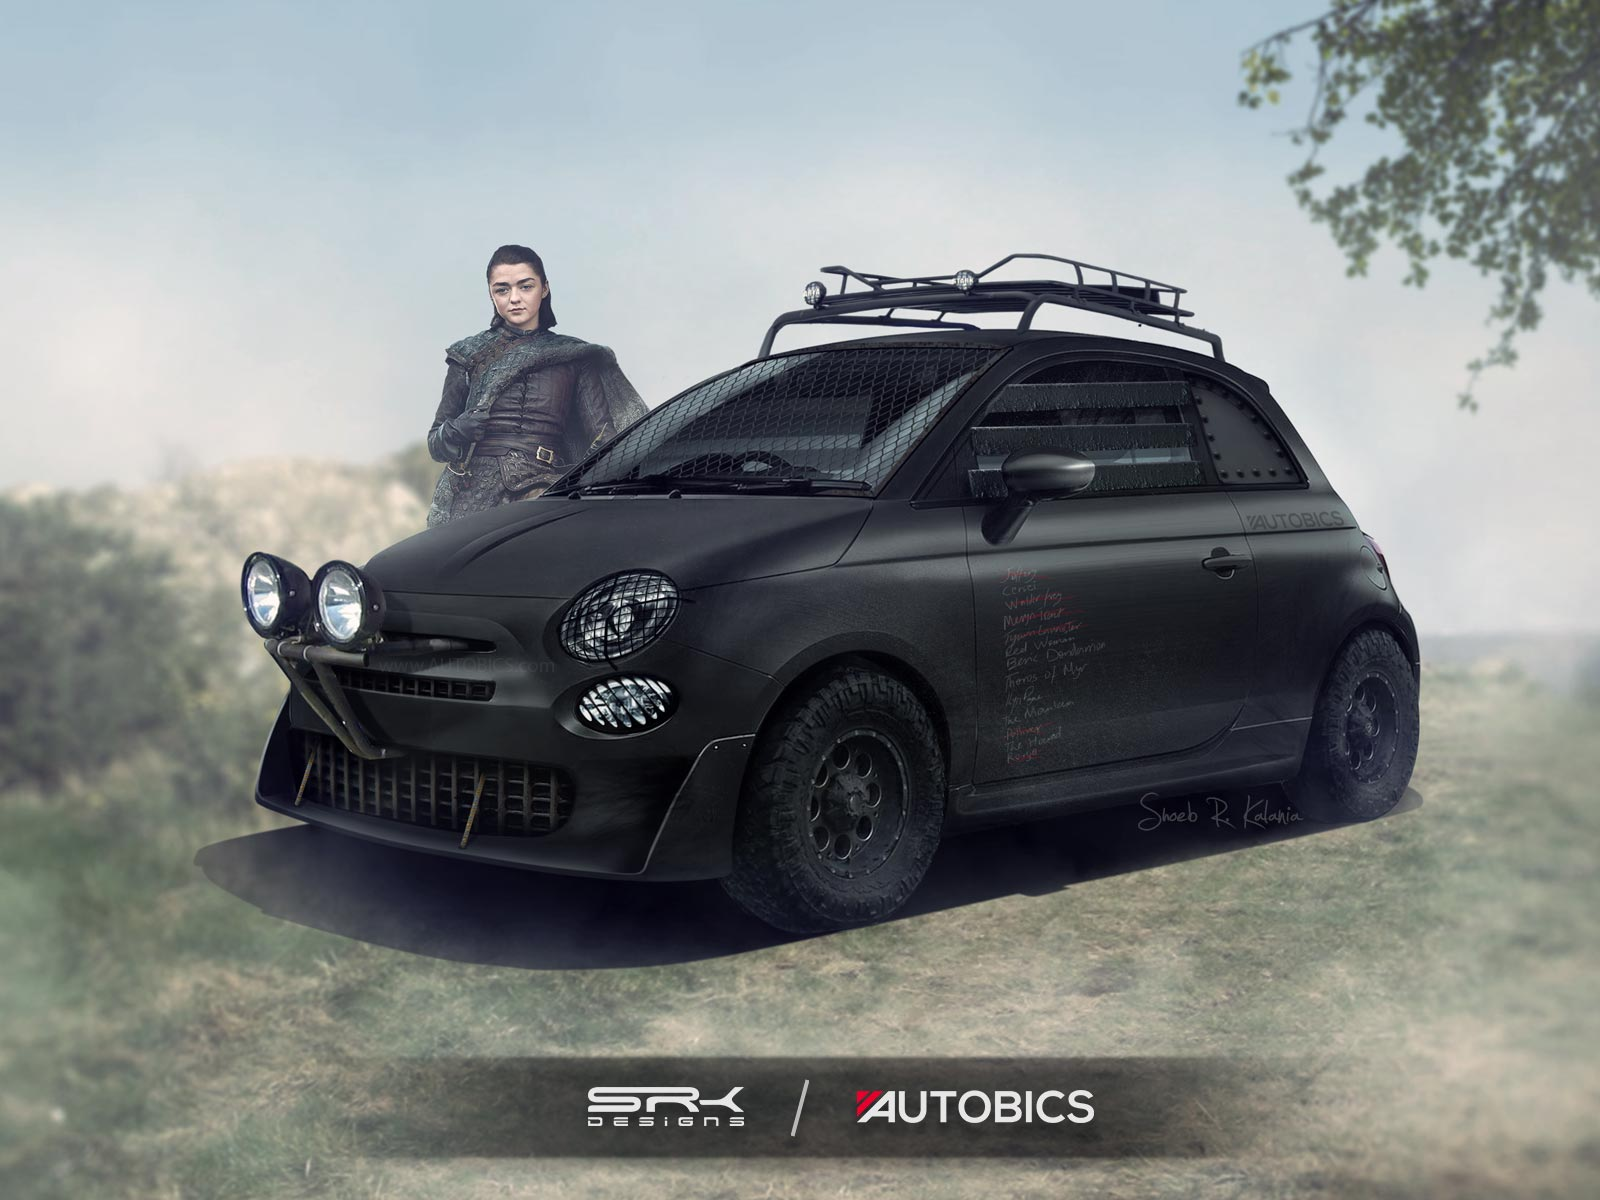 Arya Stark – Fiat 500 - Game of Thrones